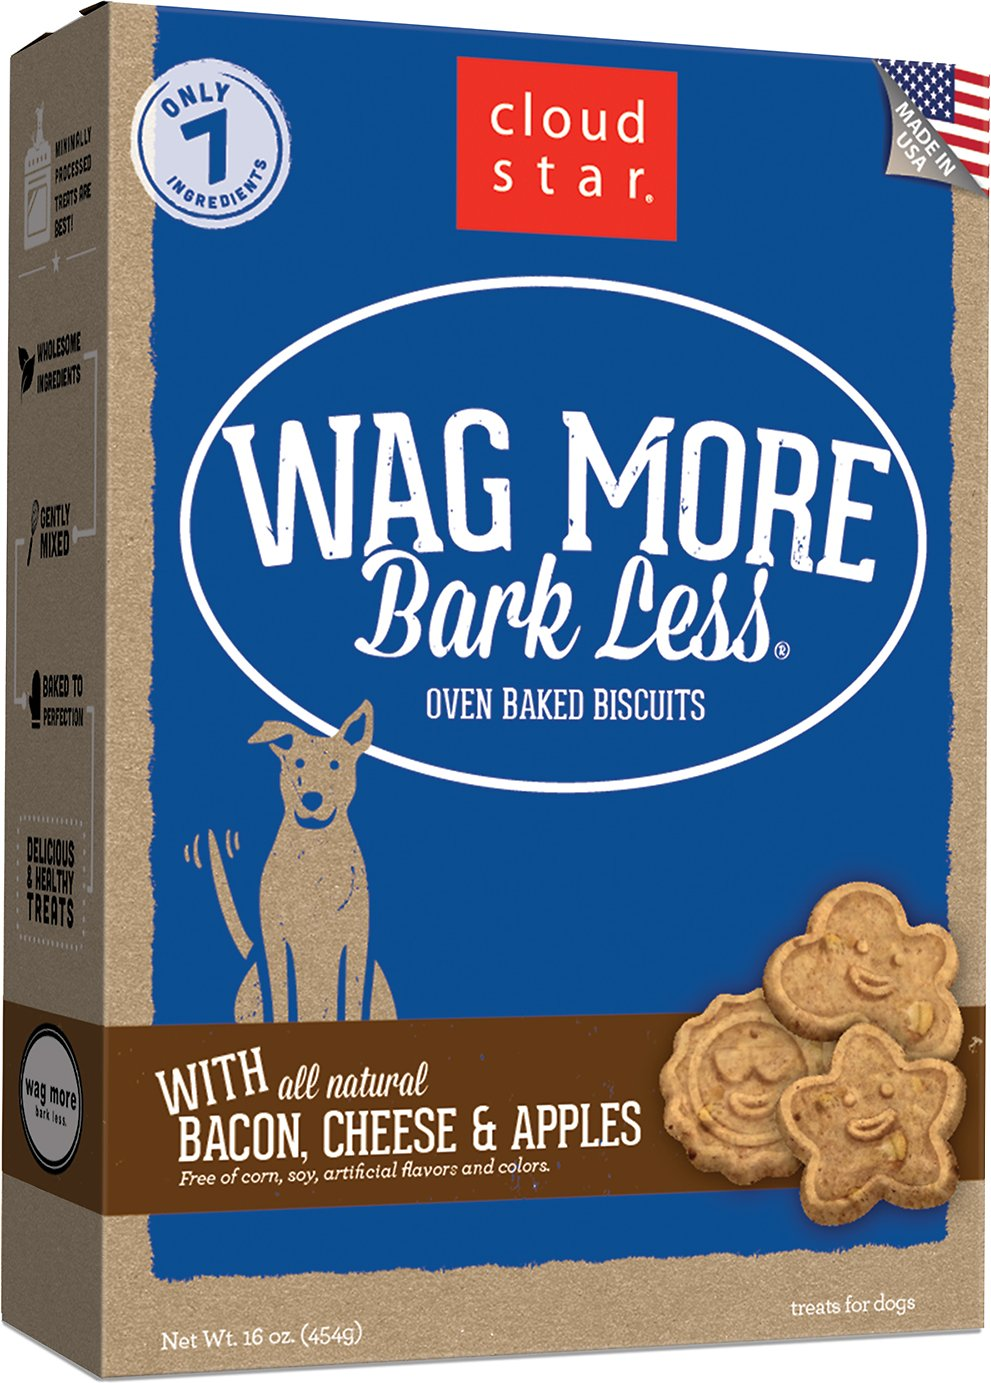 Cloud Star Wag More Bark Less Oven Baked with Bacon, Cheese & Apples Dog Treats Image